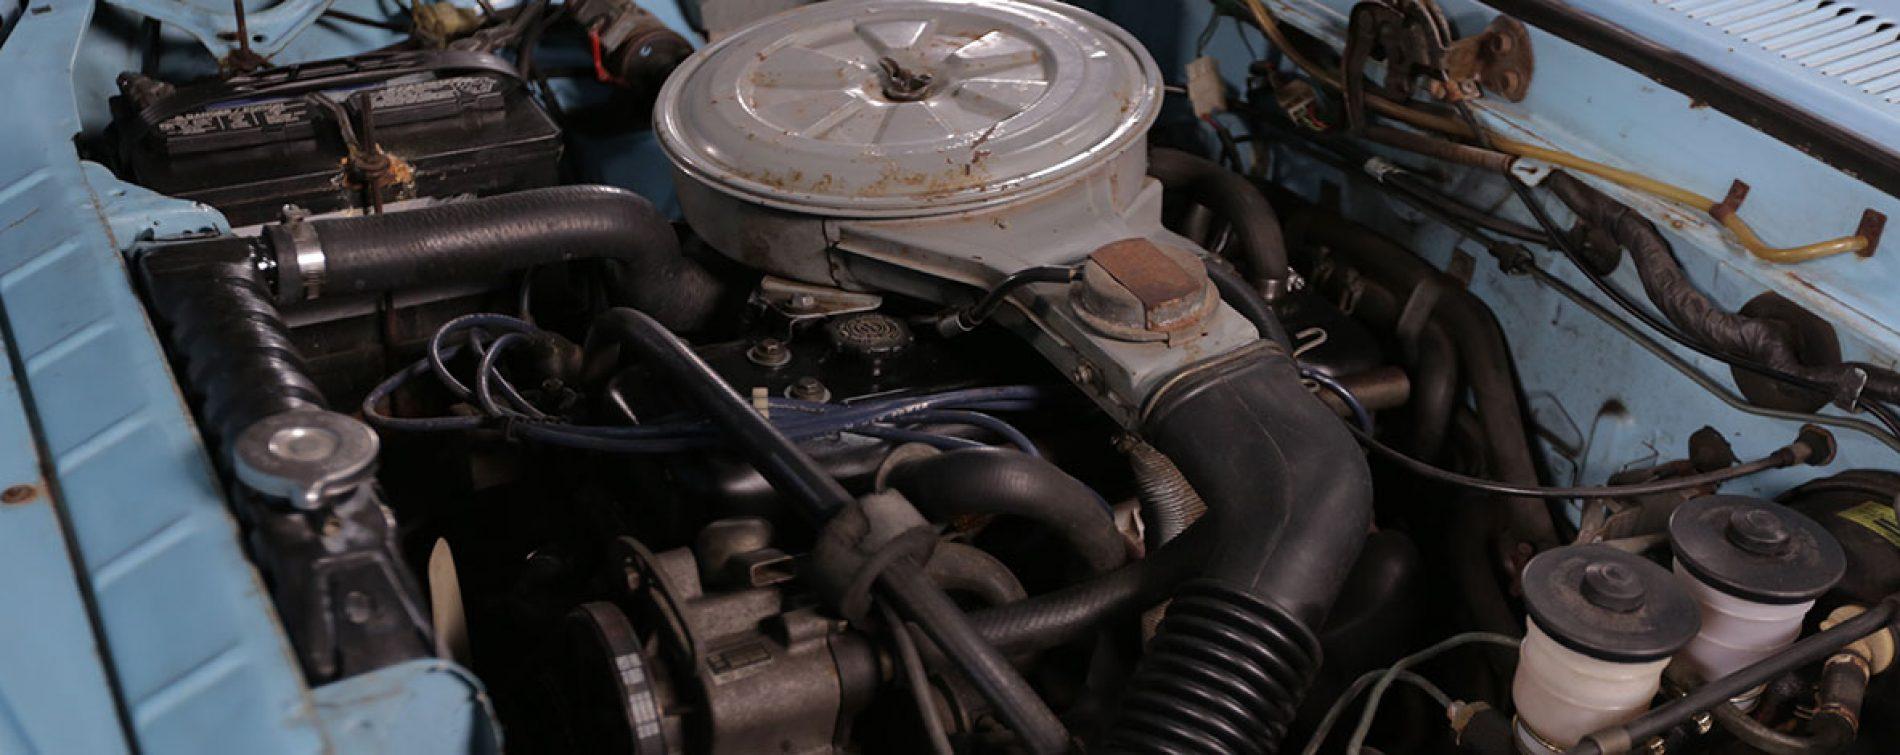 What engine is in a 1980 Chevy Luv?